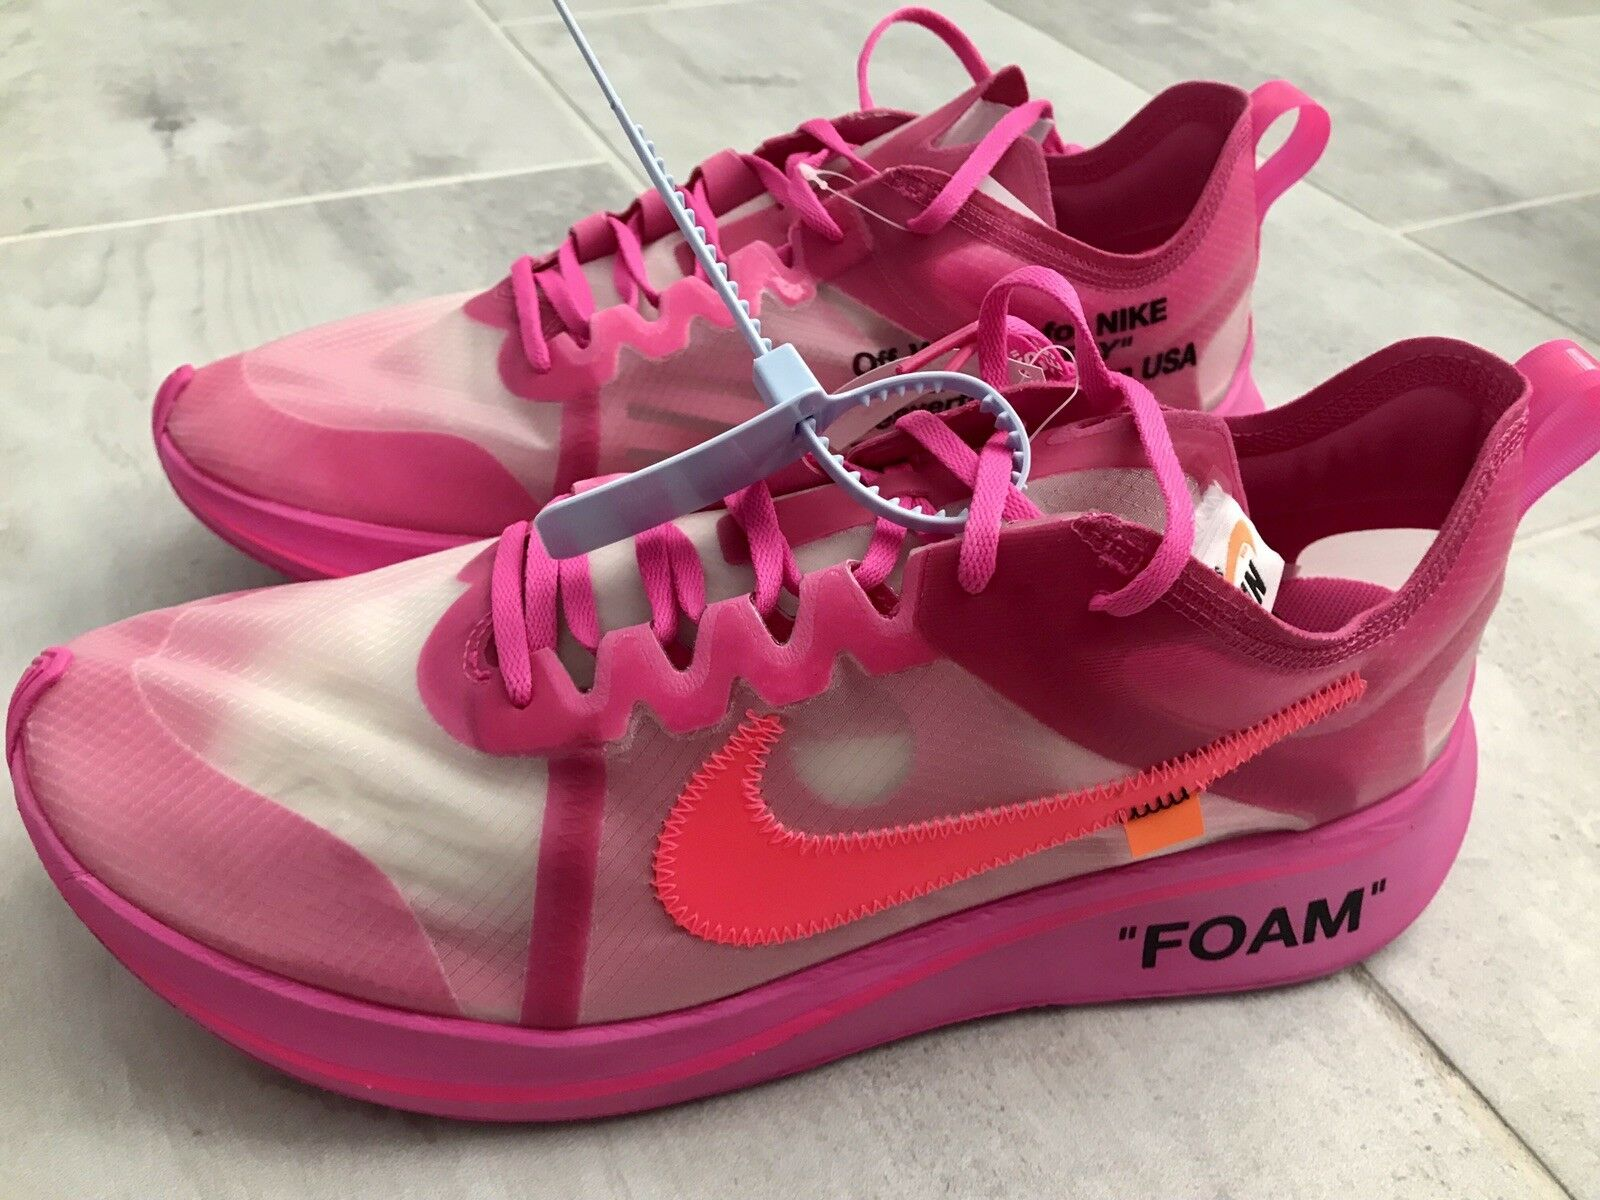 Nike The Ten Off White X Nike Zoom Fly Fly Fly Tulip Pink Size 14 Virgil Serena Williams d2b48d